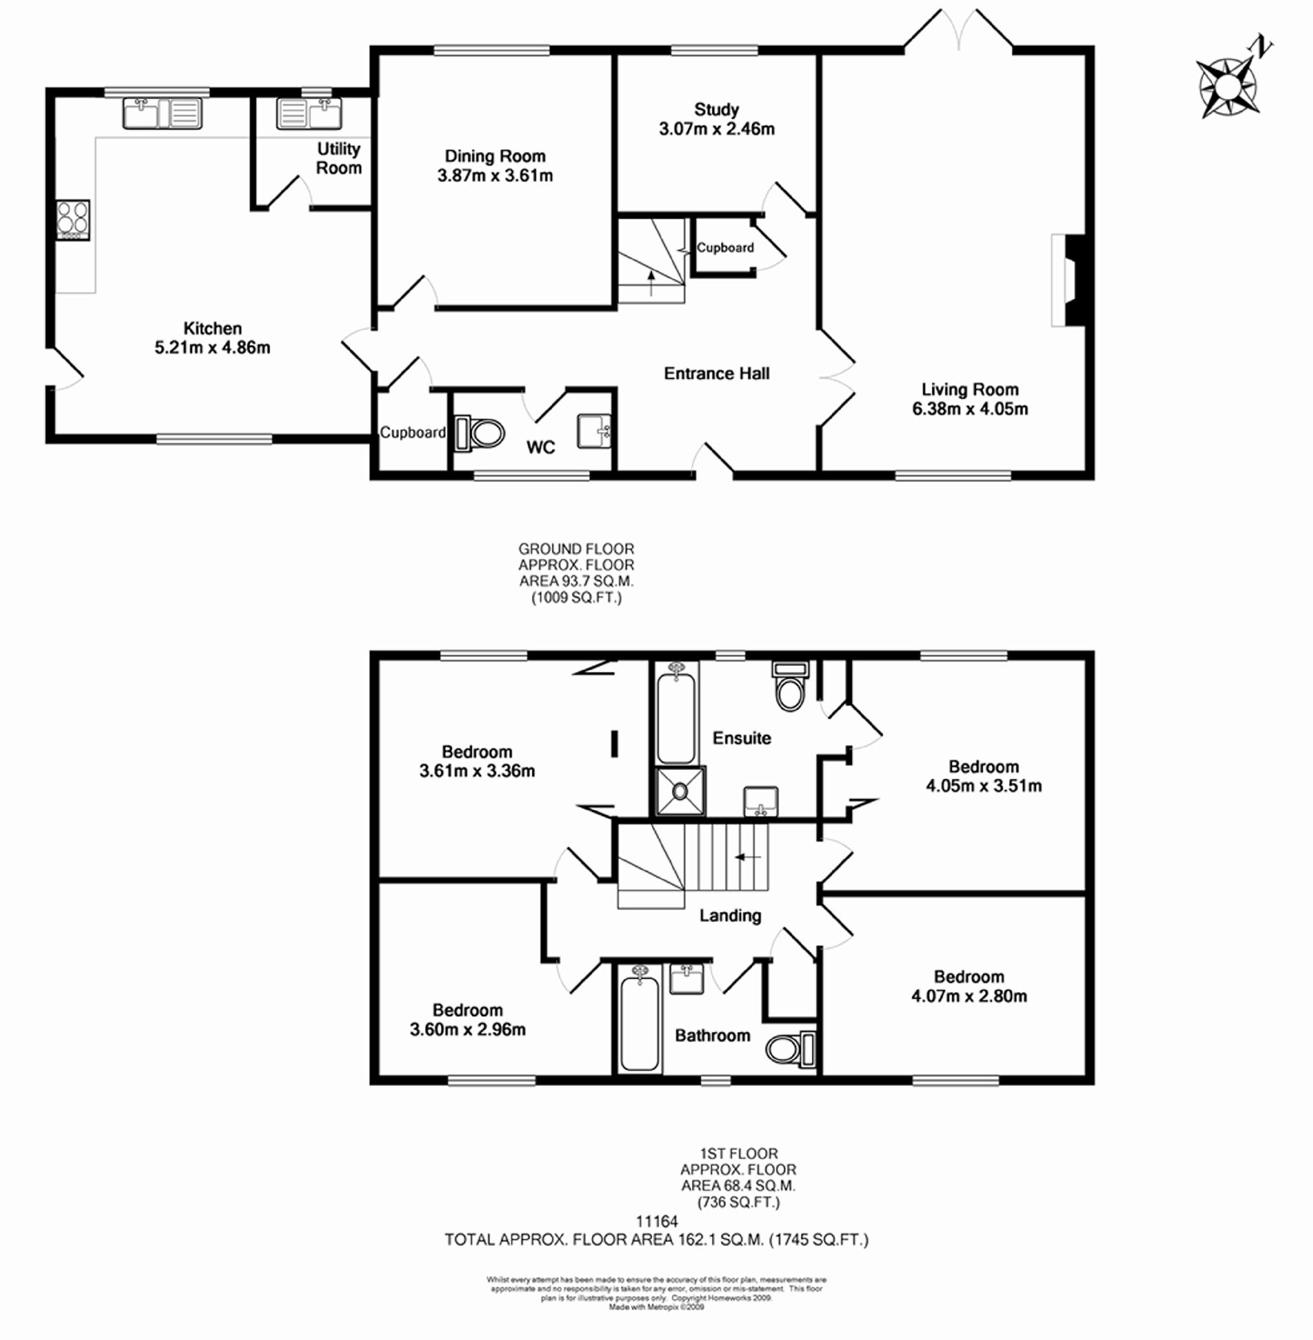 Upper tysoe cv35 ref 11164 banbury for 2 bed house floor plans uk